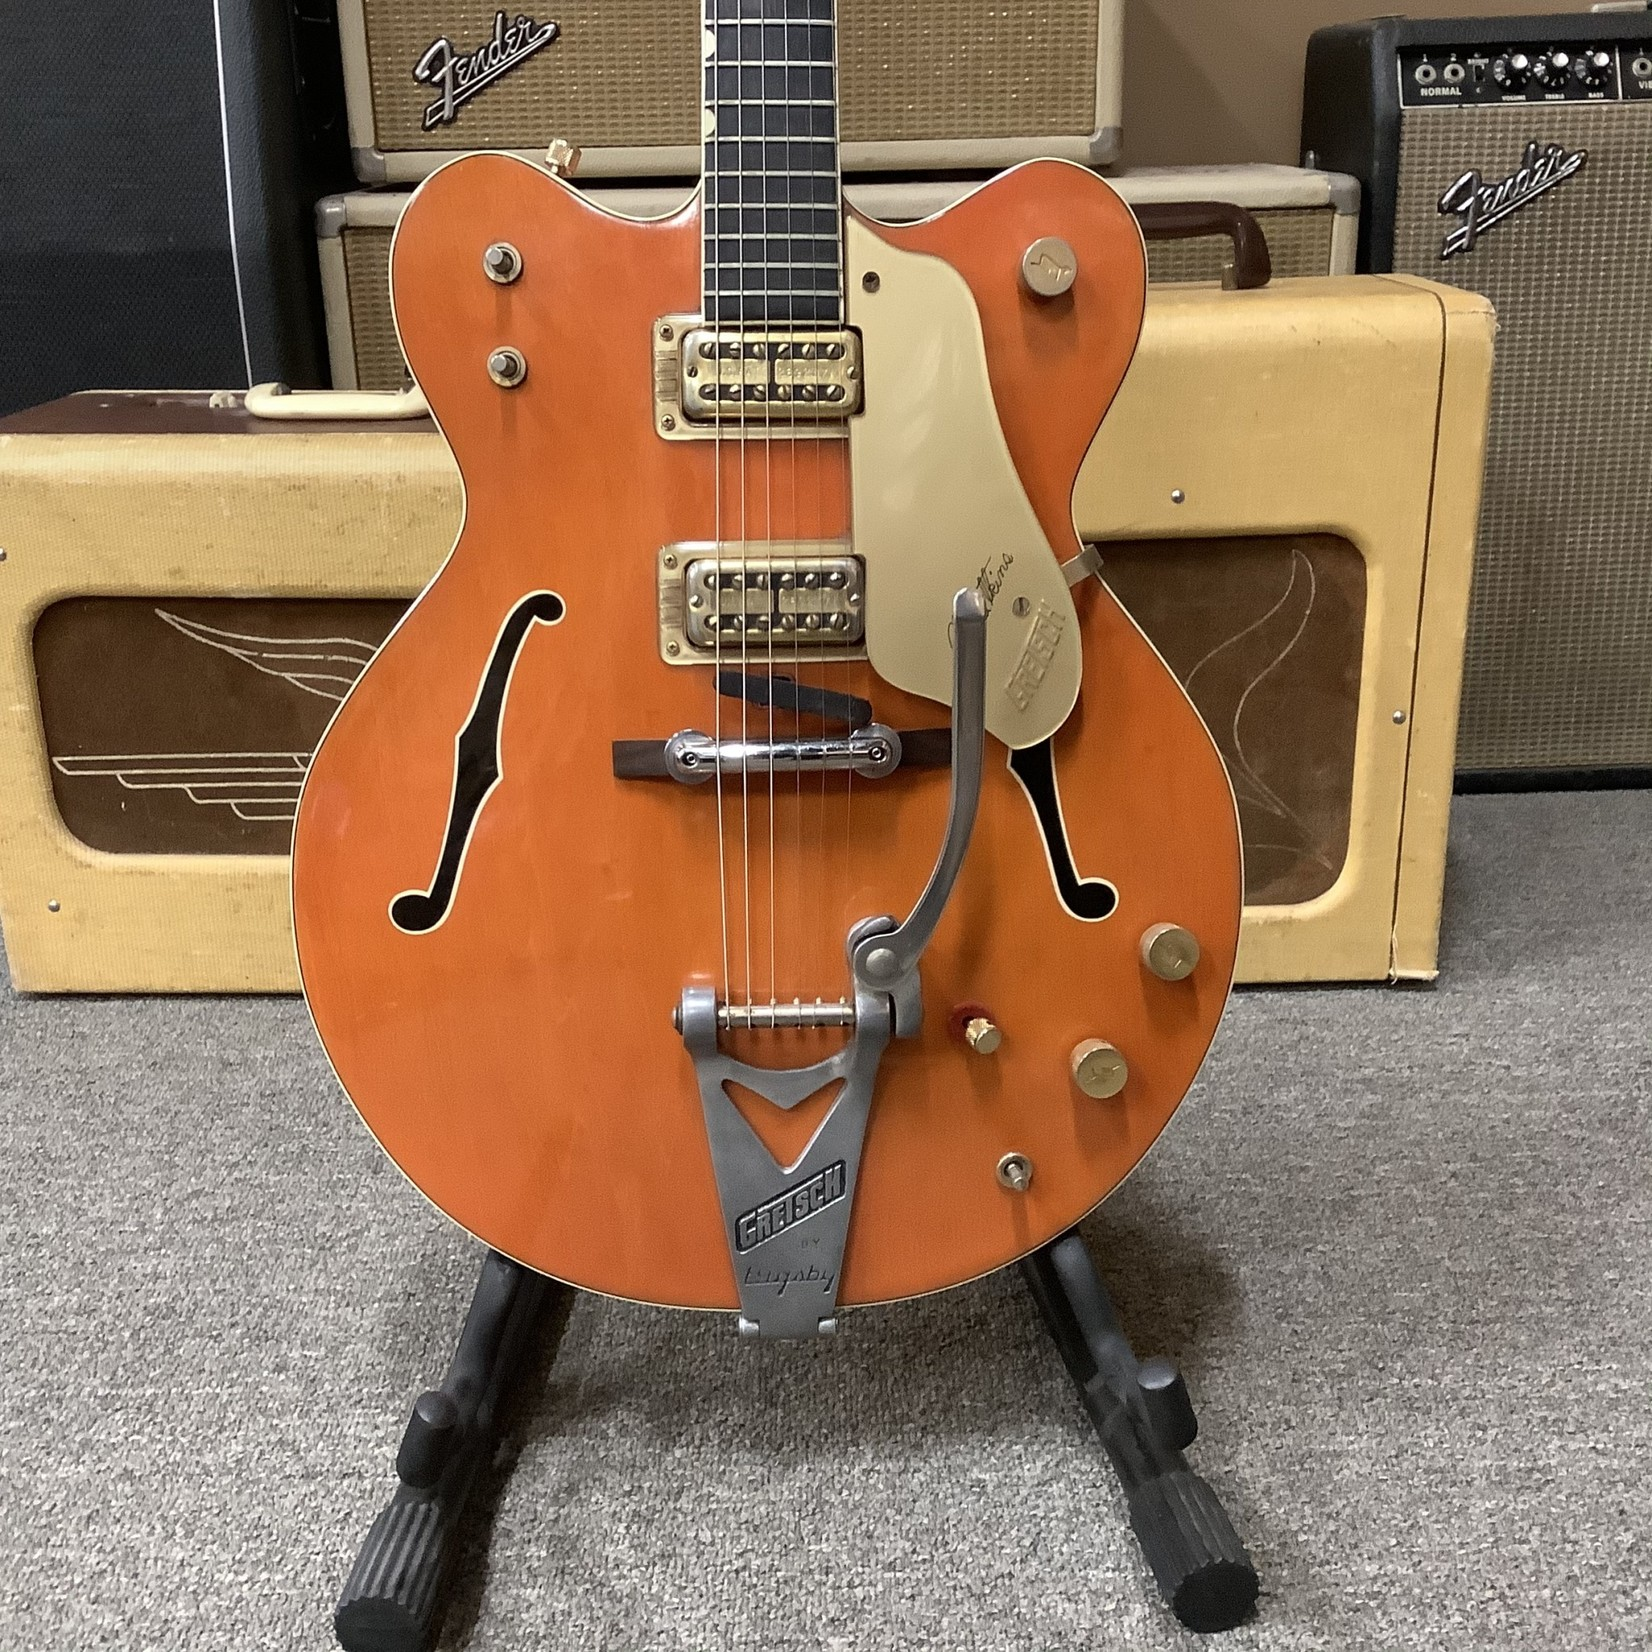 Gretsch 1964 Gretsch 6120 Nashville Double Cut